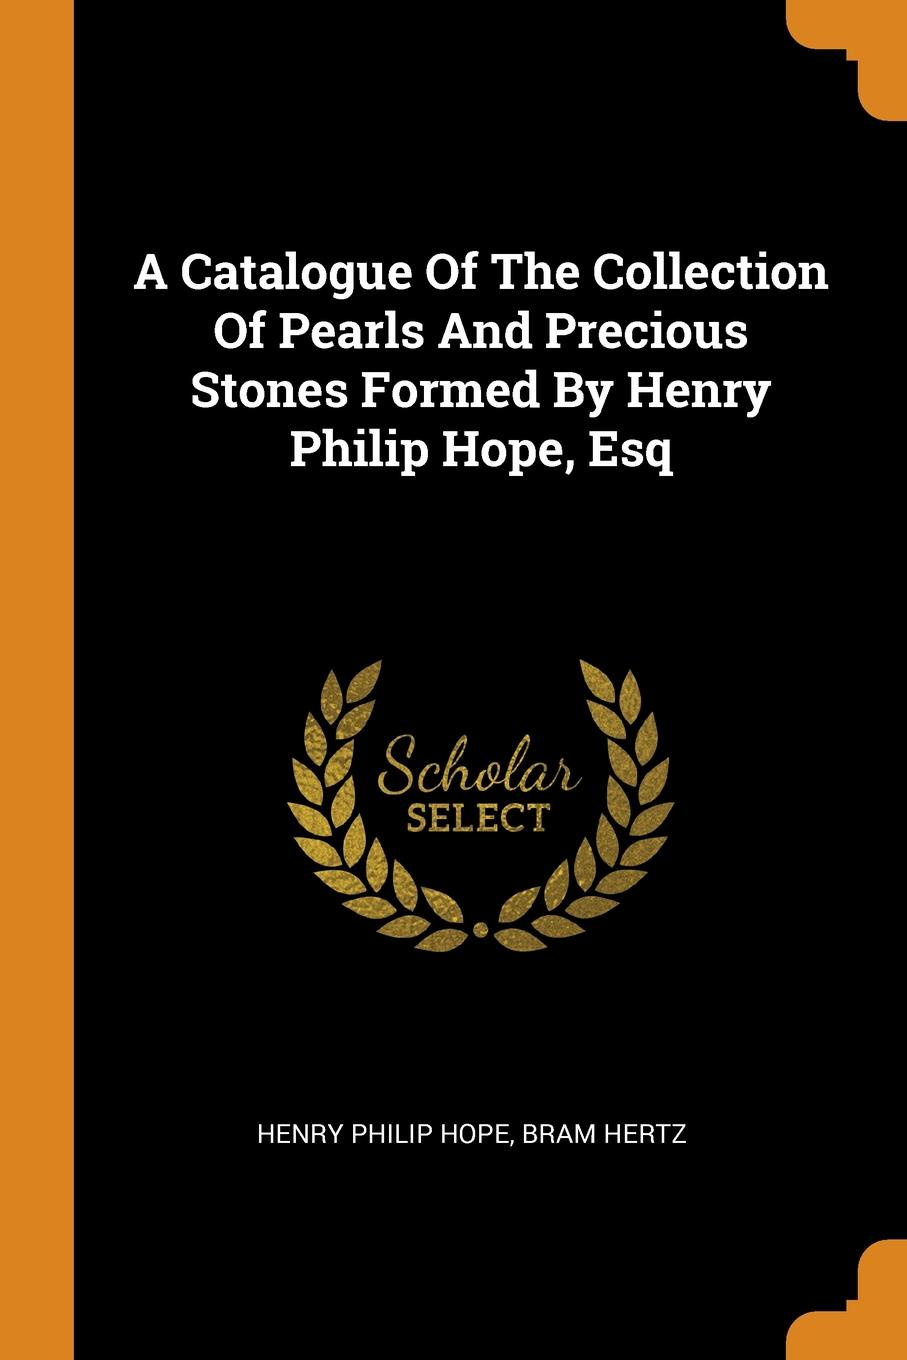 Henry Philip Hope, Bram Hertz A Catalogue Of The Collection Of Pearls And Precious Stones Formed By Henry Philip Hope, Esq